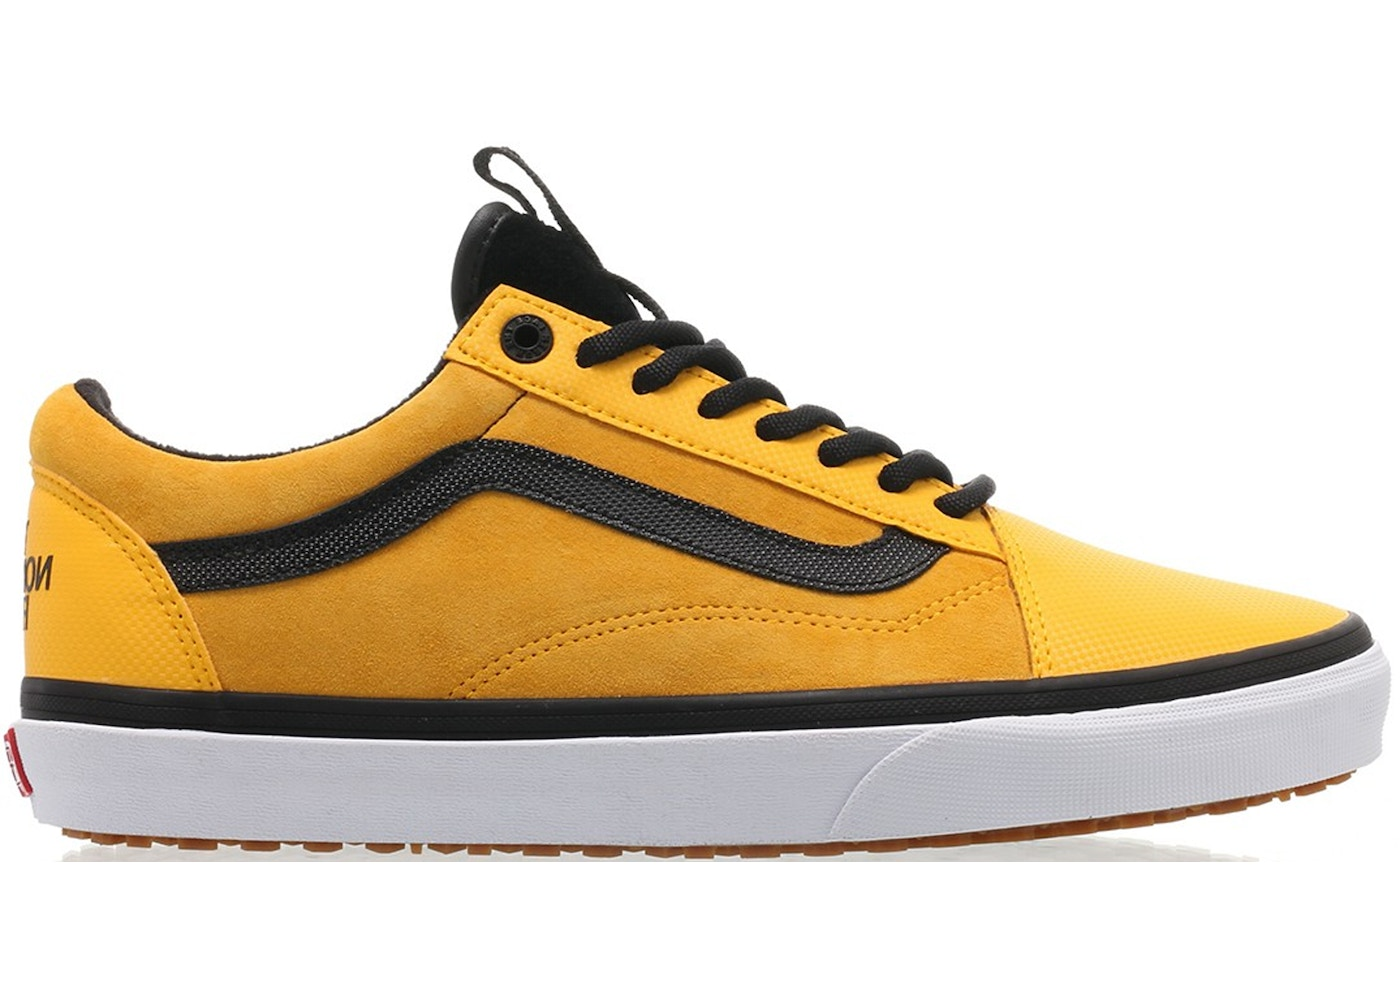 vans yellow old skool